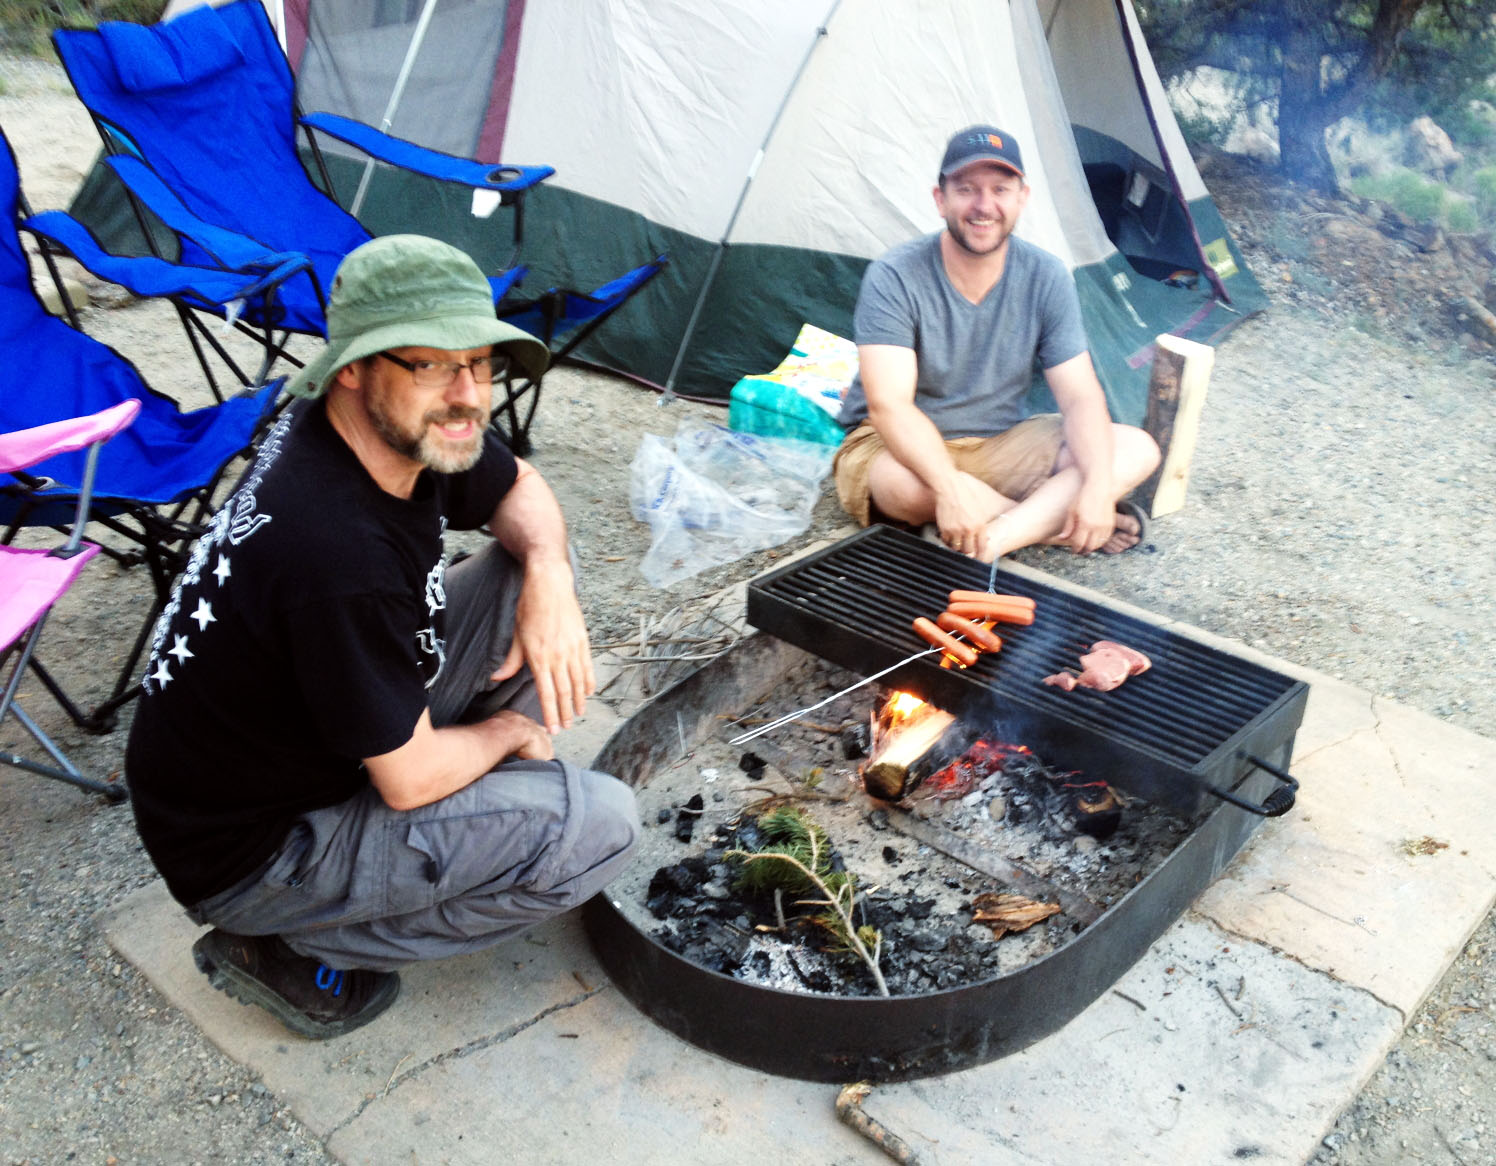 The guys finally gave up and used my fire for some tasty hot dogs.